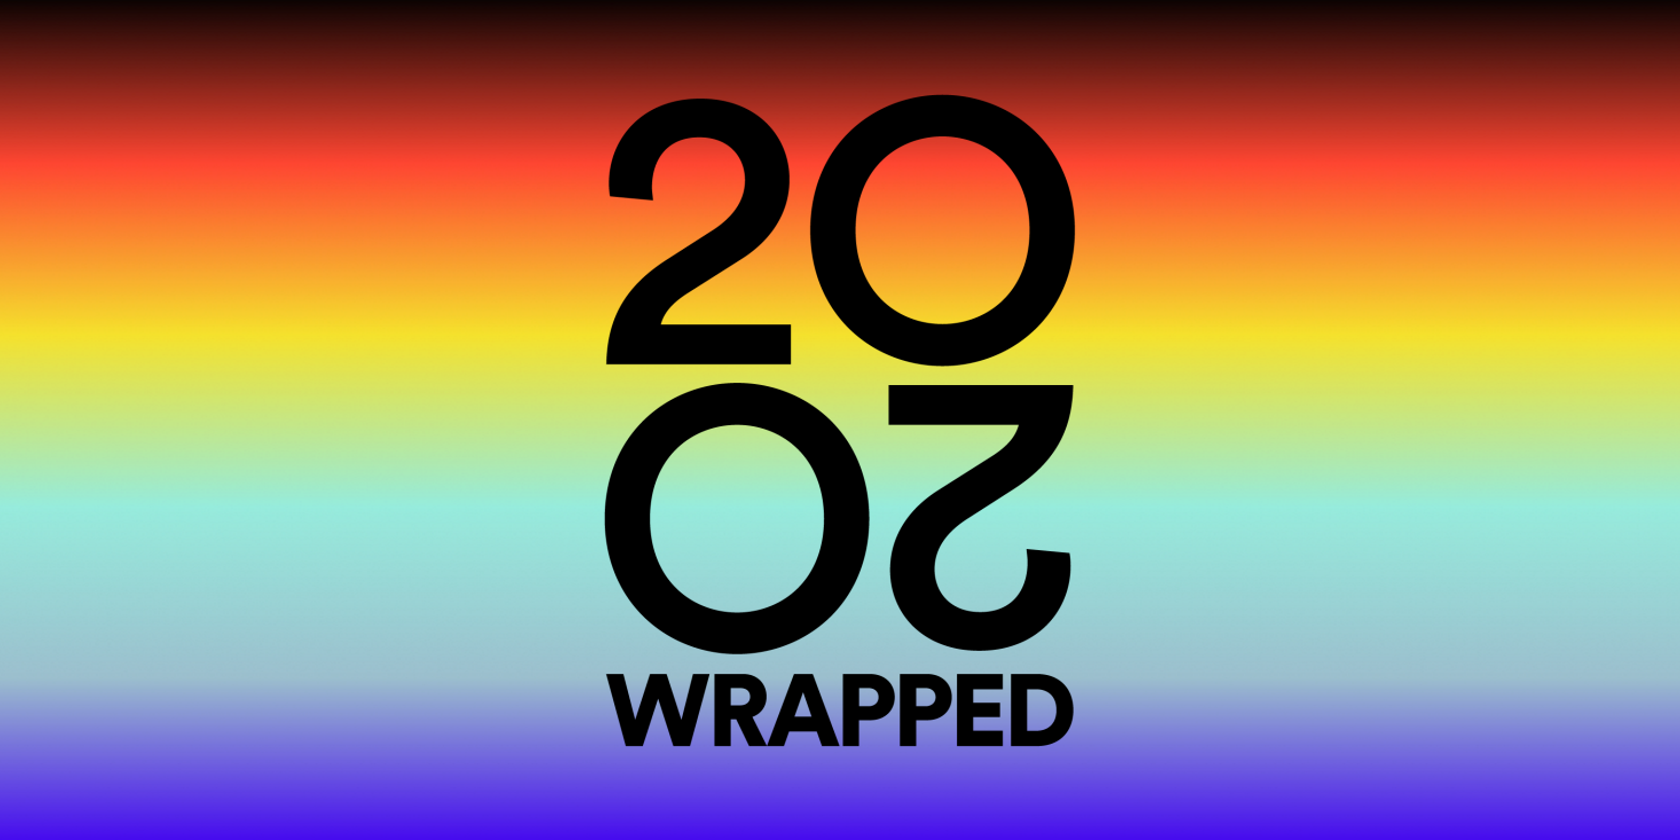 Your Personal 2020 Spotify Wrapped Has Arrived